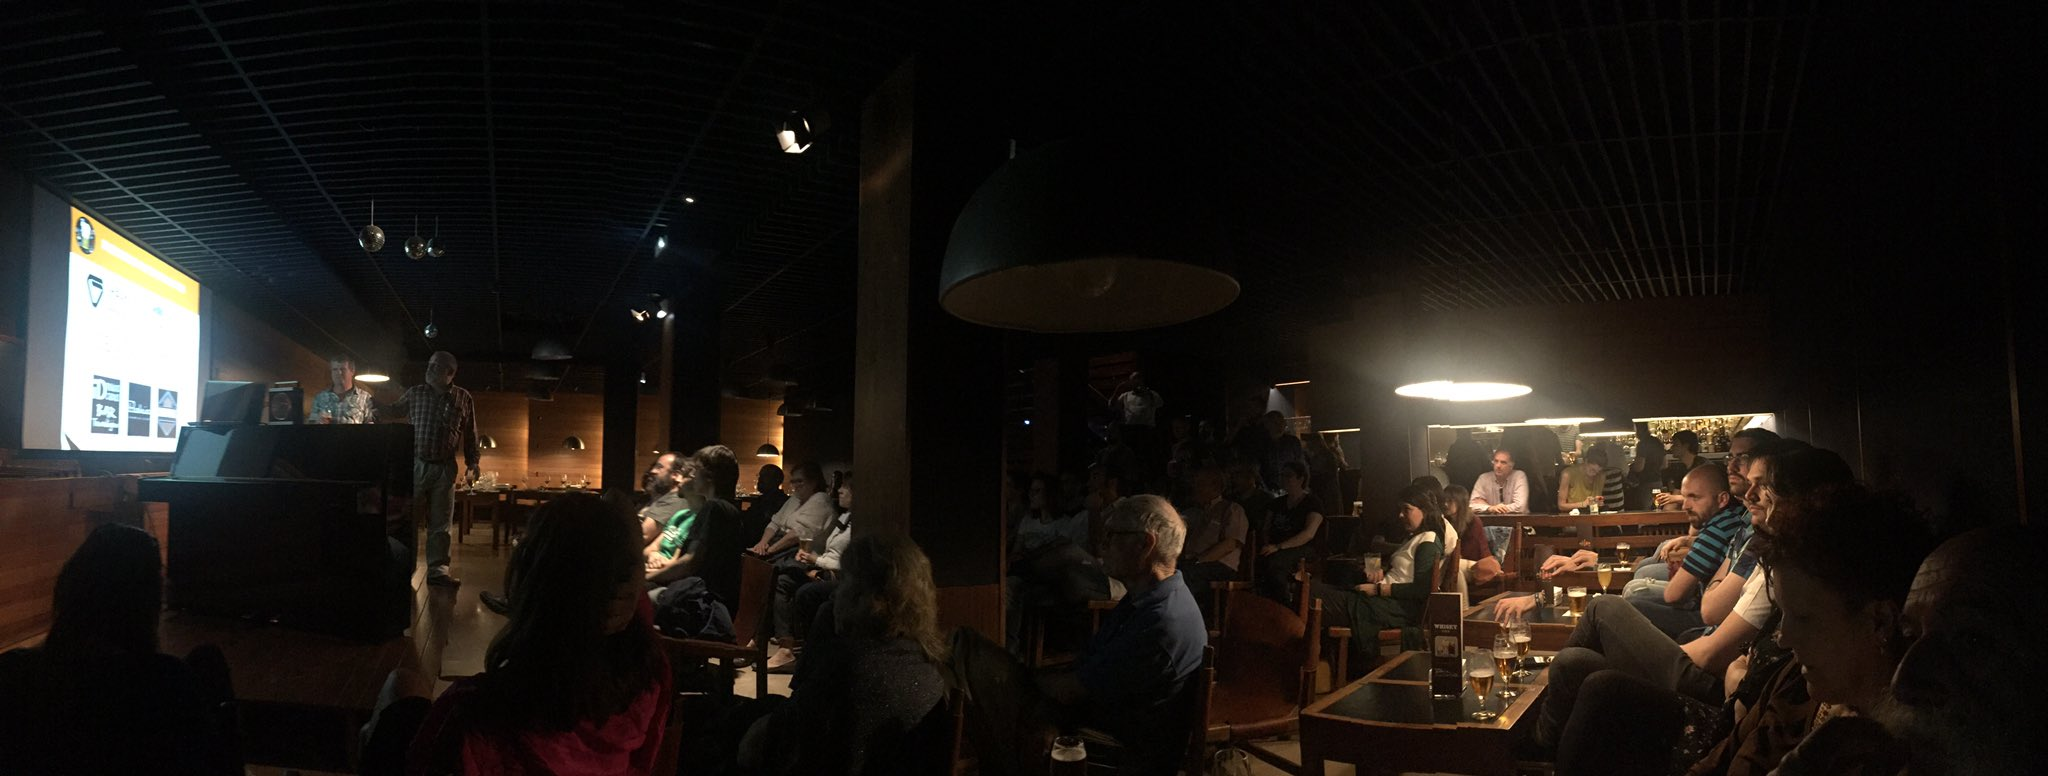 Llenazo en el Bar Bahía #Pint17PNA @pintofscienceES https://t.co/thqZNBVkAu